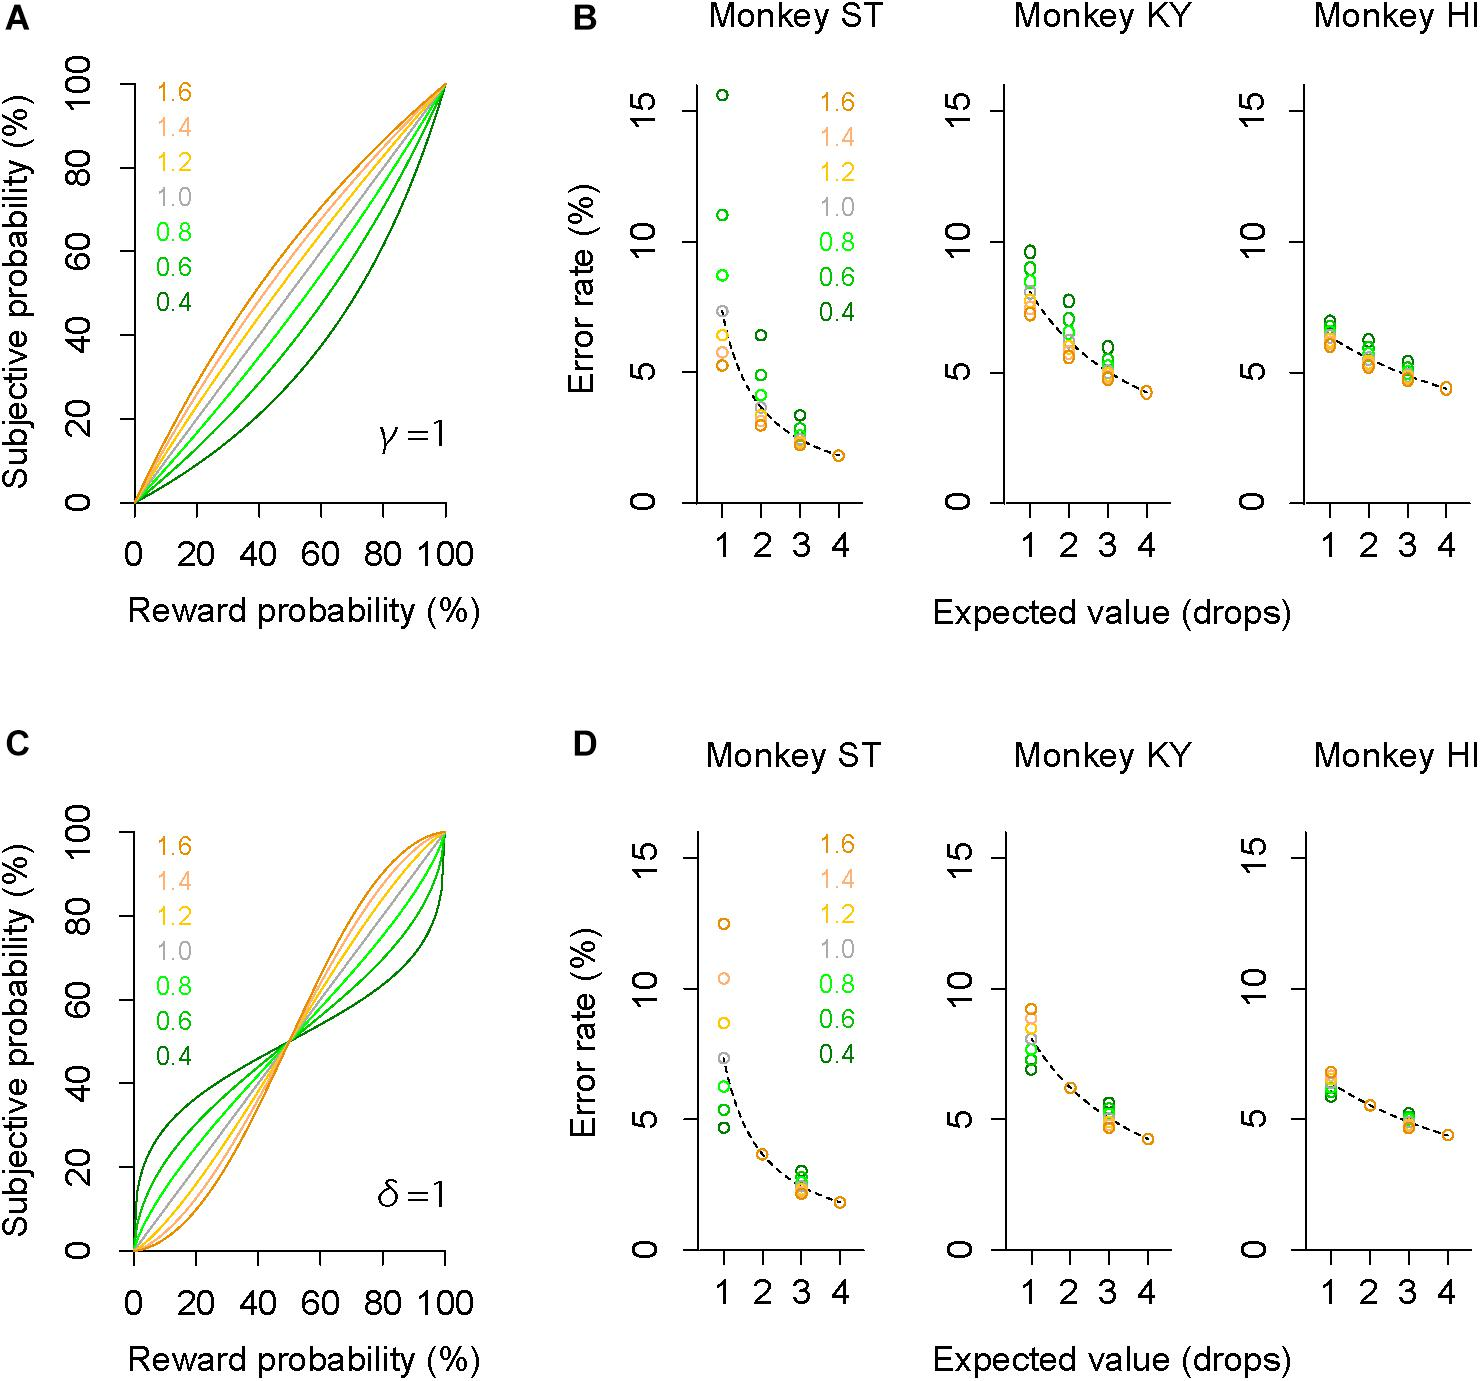 Frontiers | Trait and State-Dependent Risk Attitude of